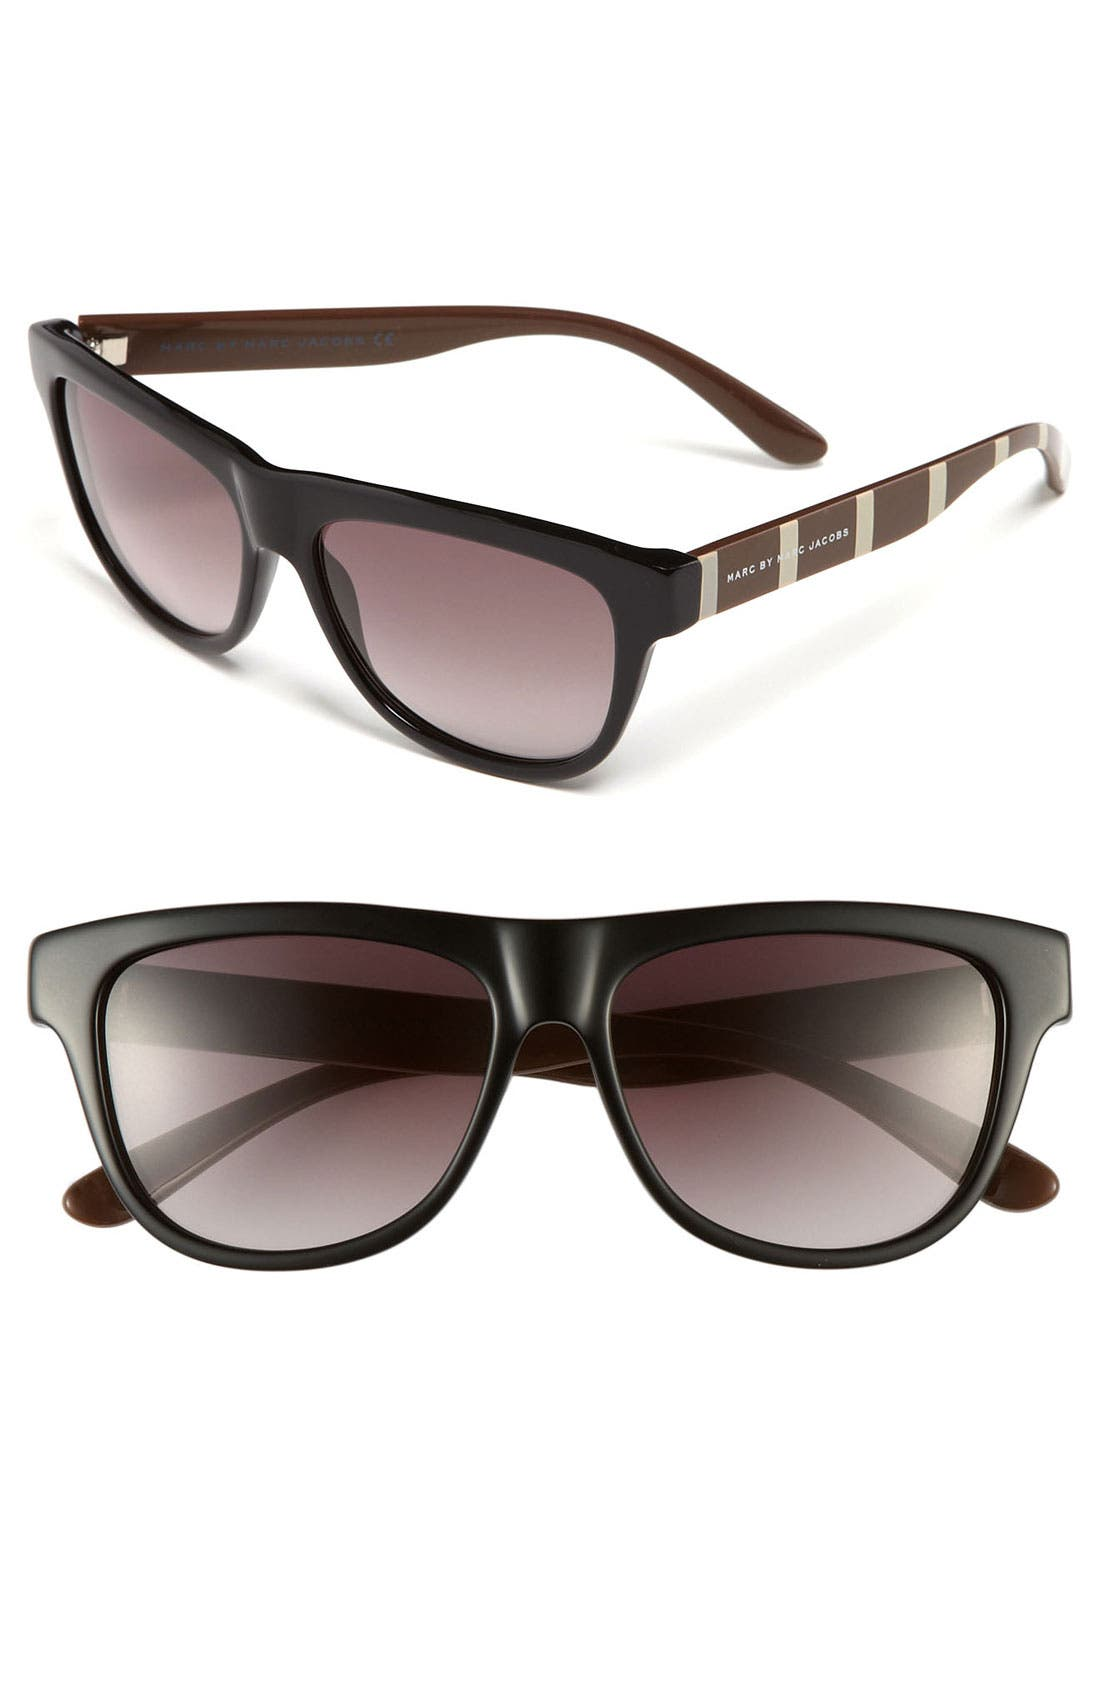 Main Image - MARC BY MARC JACOBS 55mm Retro Sunglasses